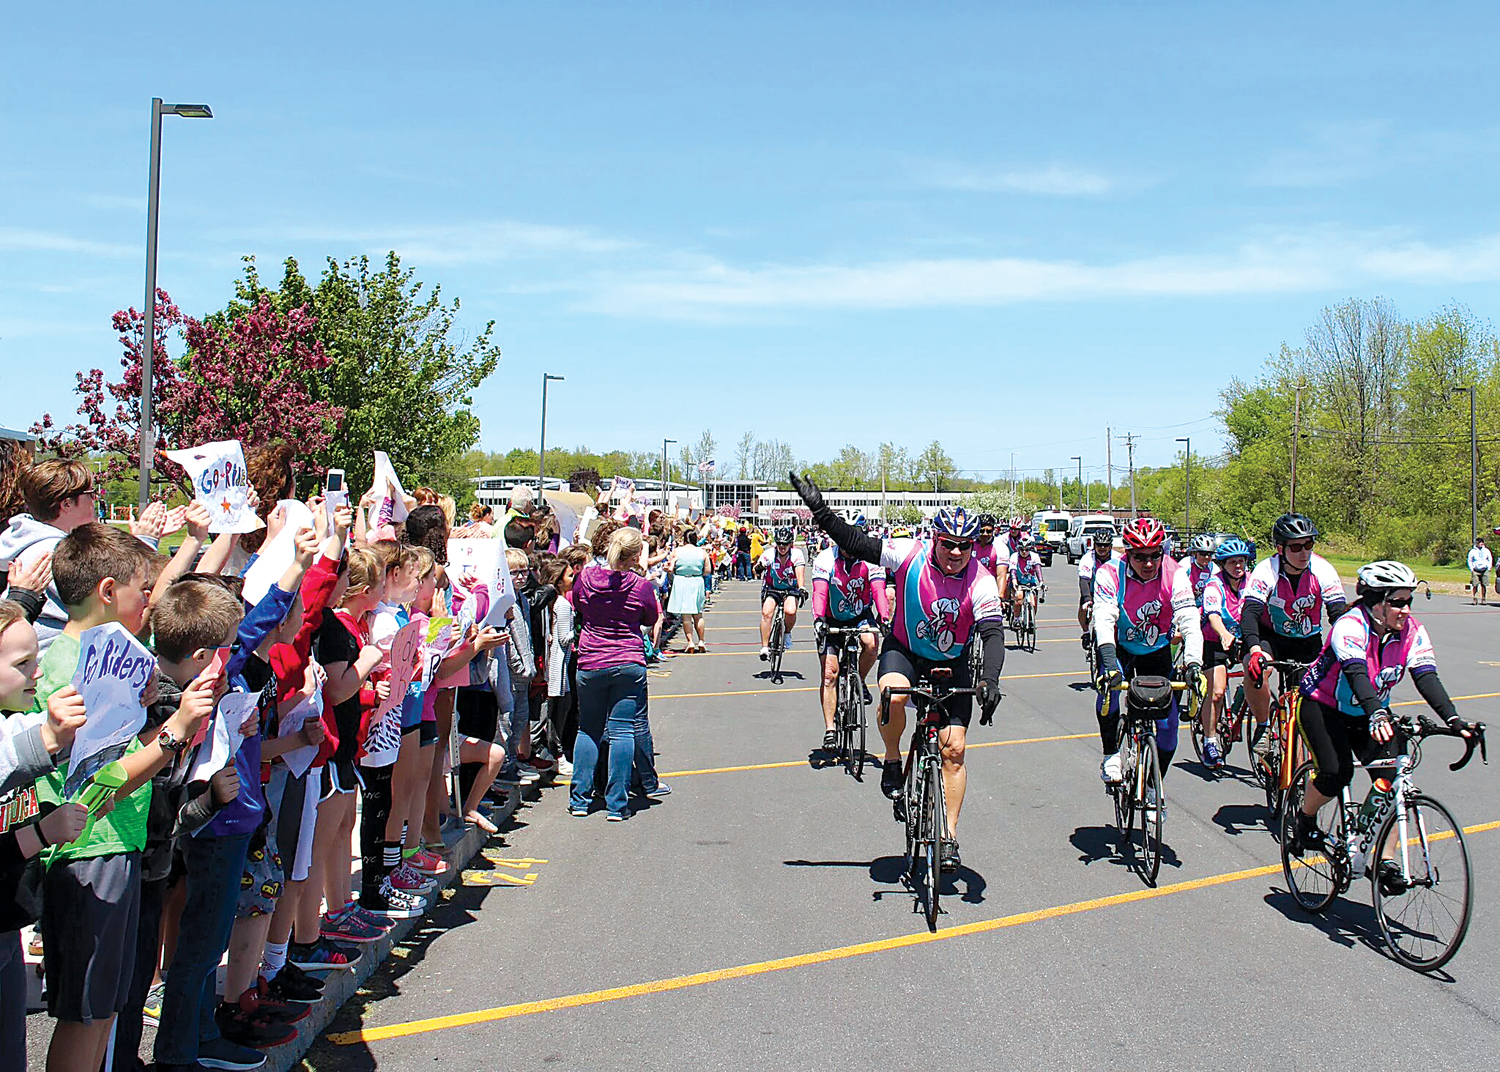 Participants rode their bikes past the cheering crowds of students and staff awaiting their arrival at Village Elementary School. Provided photo